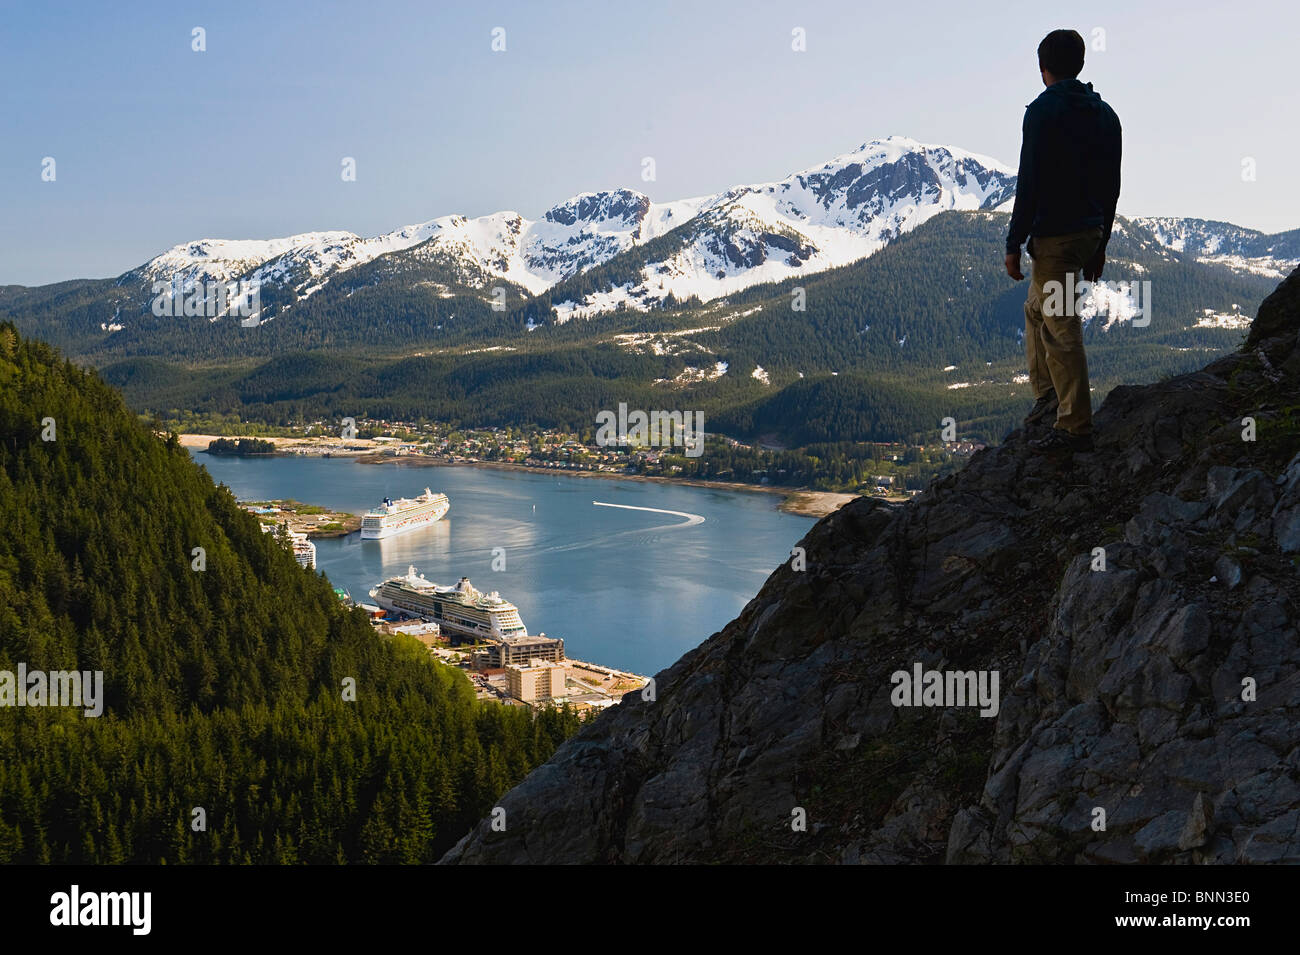 A hiker takes in the view of Gastineau Channel, Mt. Jumbo, and Downtown Juneau from the side of Mt. Roberts in Alaska, - Stock Image